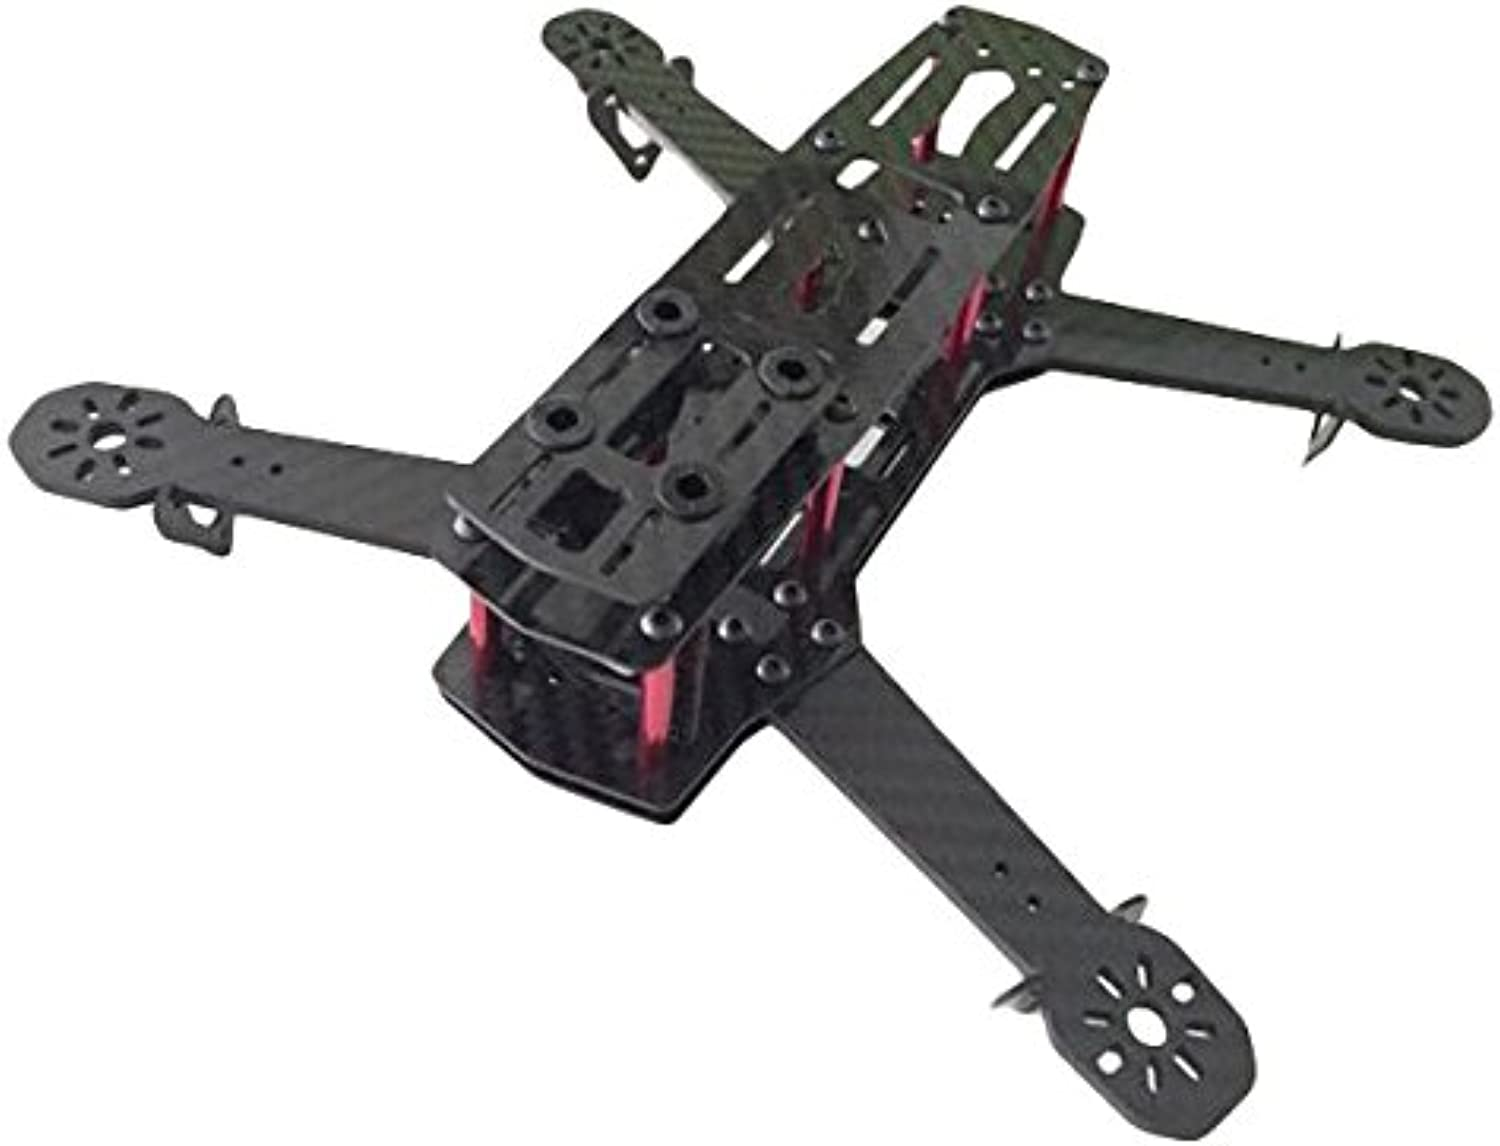 KINGDUO ZMR250 V2 Carbon Fiber Frame Kit RC Drone FPV Racing 4.0mm Arm Thickness Support 1806 2204 2206 Power